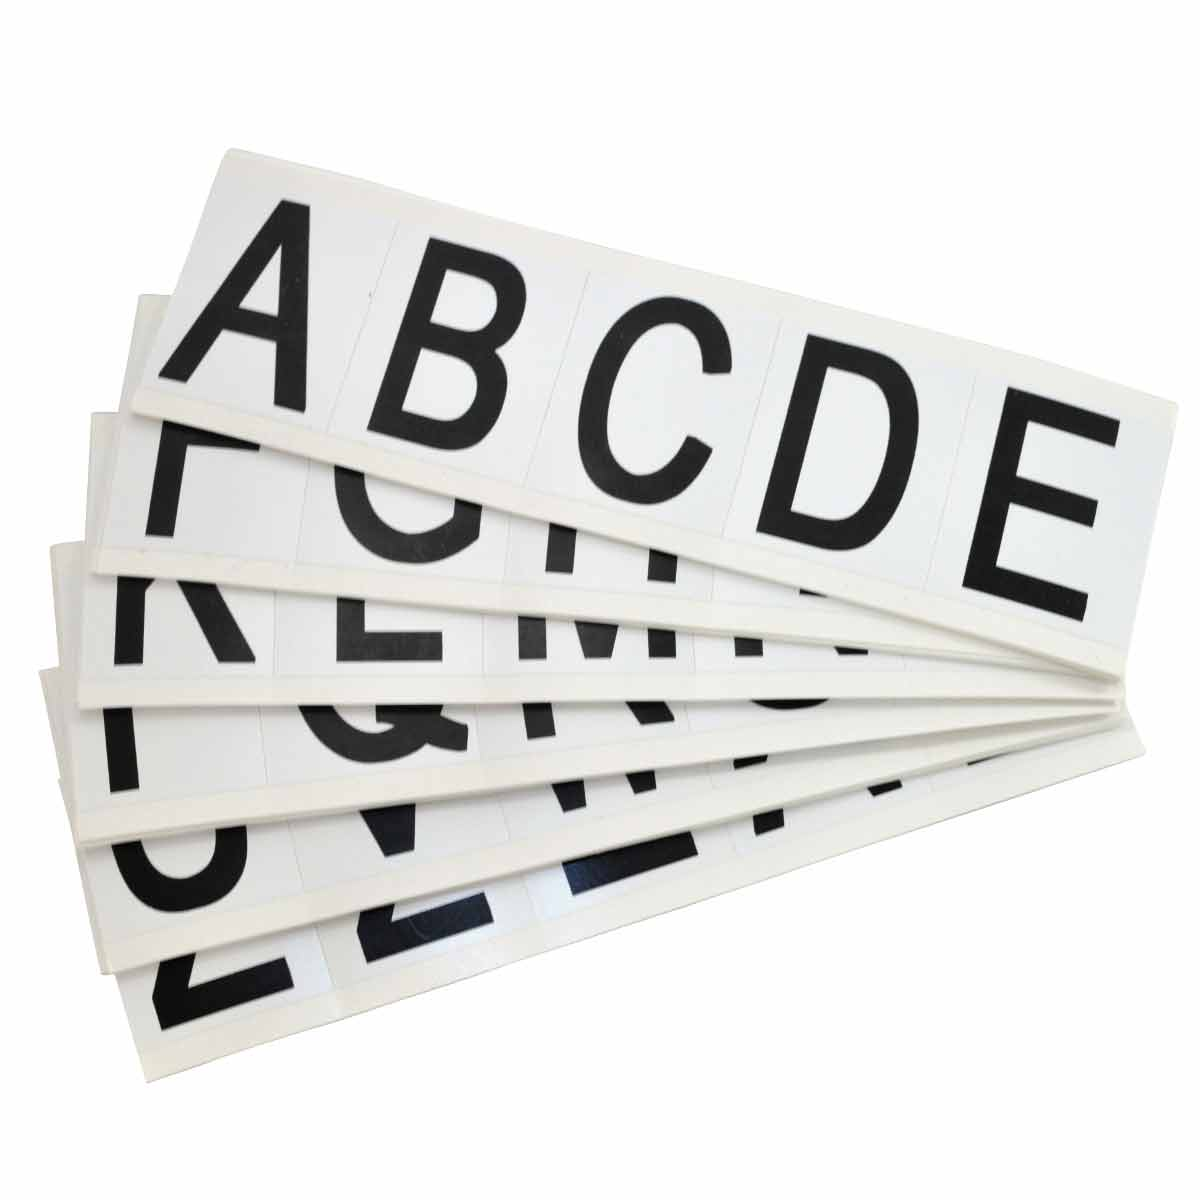 Brady® 97712 9714 Consecutive High Quality Standard Letter Label Kit, Black A to Z Character, 1-15/16 in H x 3/4 in W, White Background, B-946 Vinyl